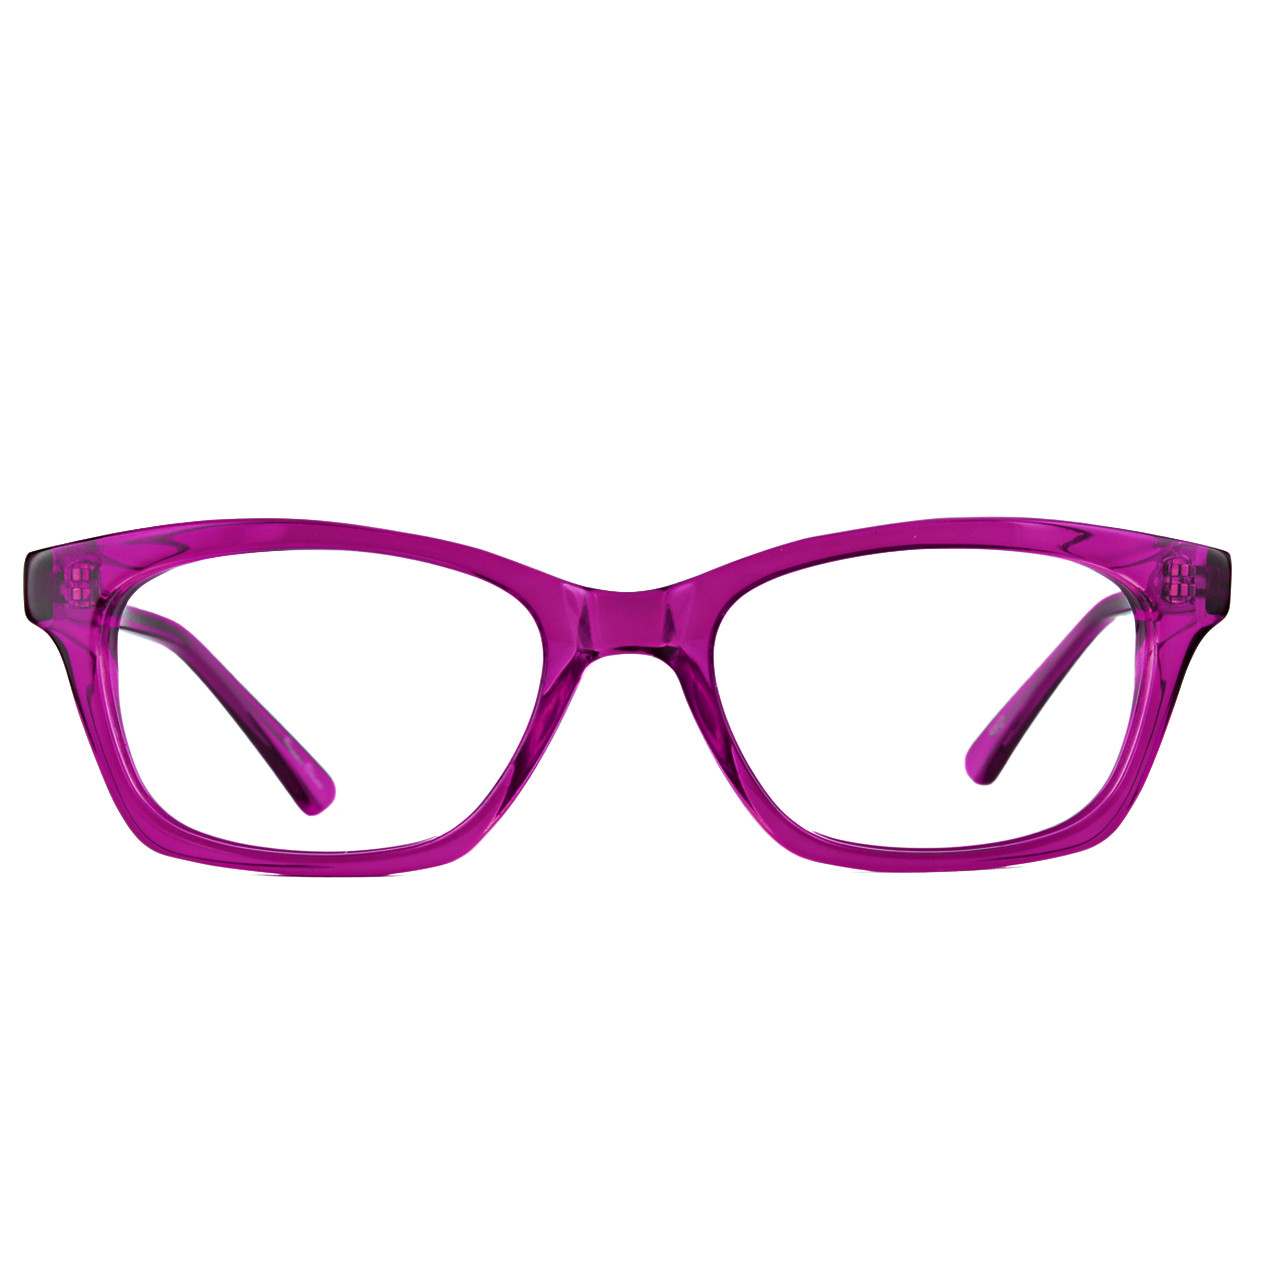 Color: Radiant Orchid